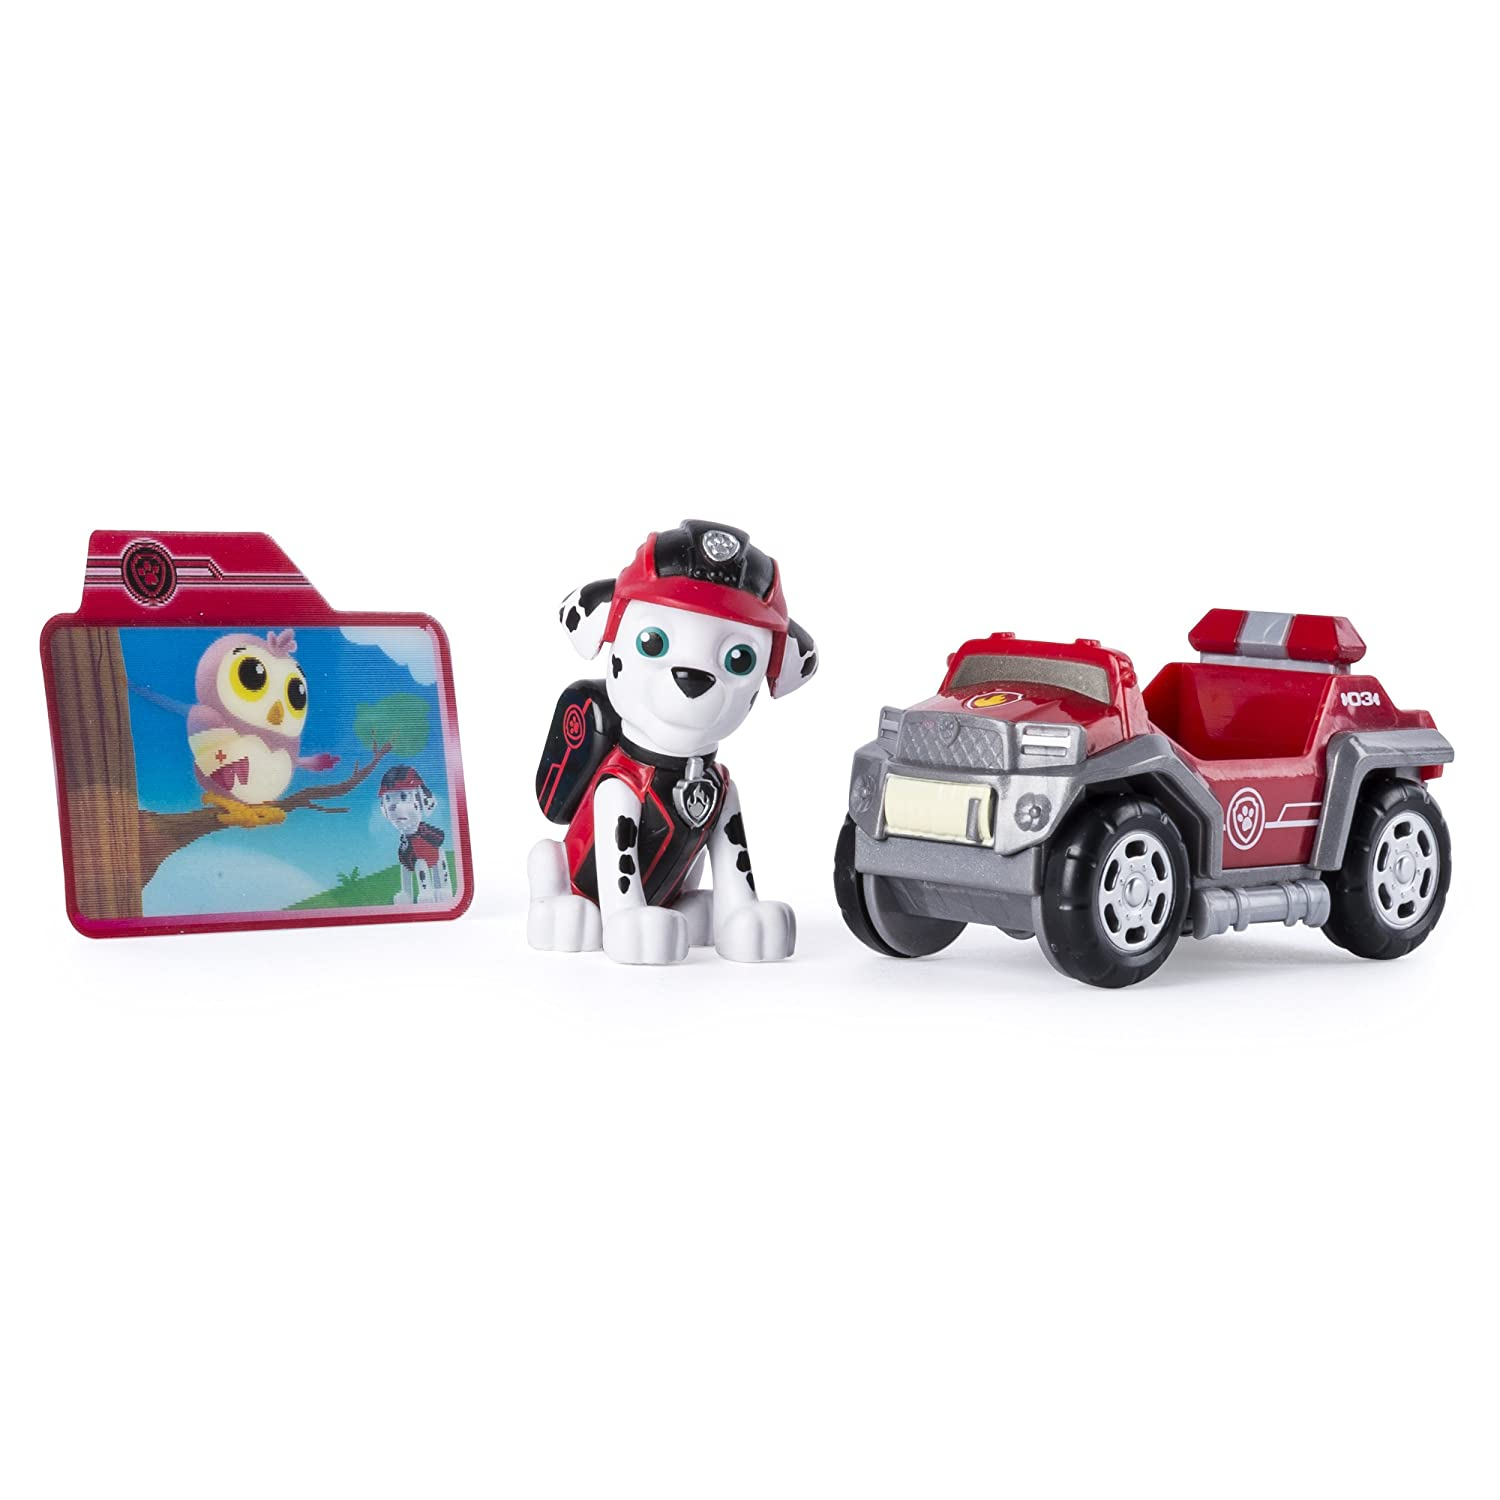 bacee8d77cb61 PAW PATROL 6037962 Mission Mini véhicule - Marshall  Amazon.fr  Jeux et  Jouets